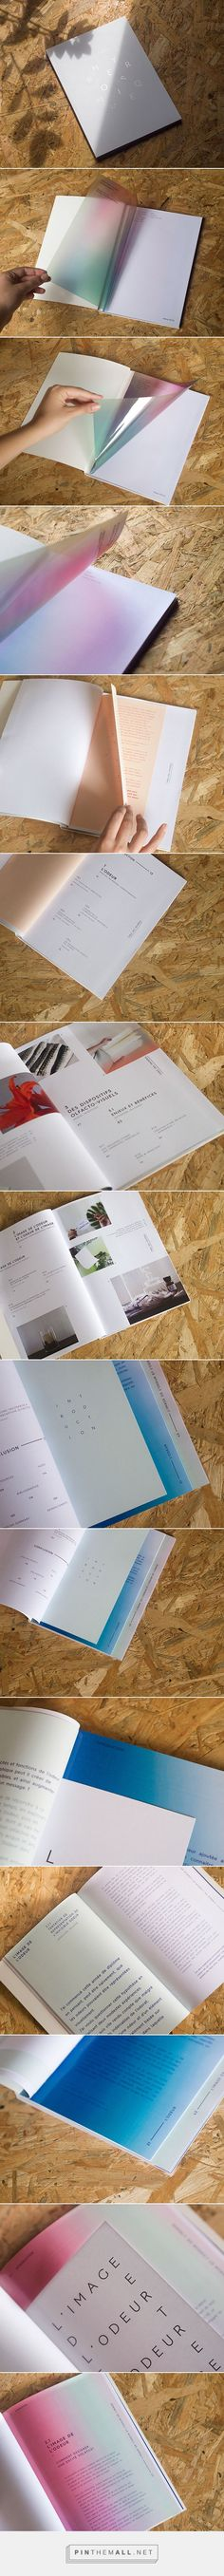 Design graphique hyperosmique on Behance... - a grouped images picture - Pin Them All